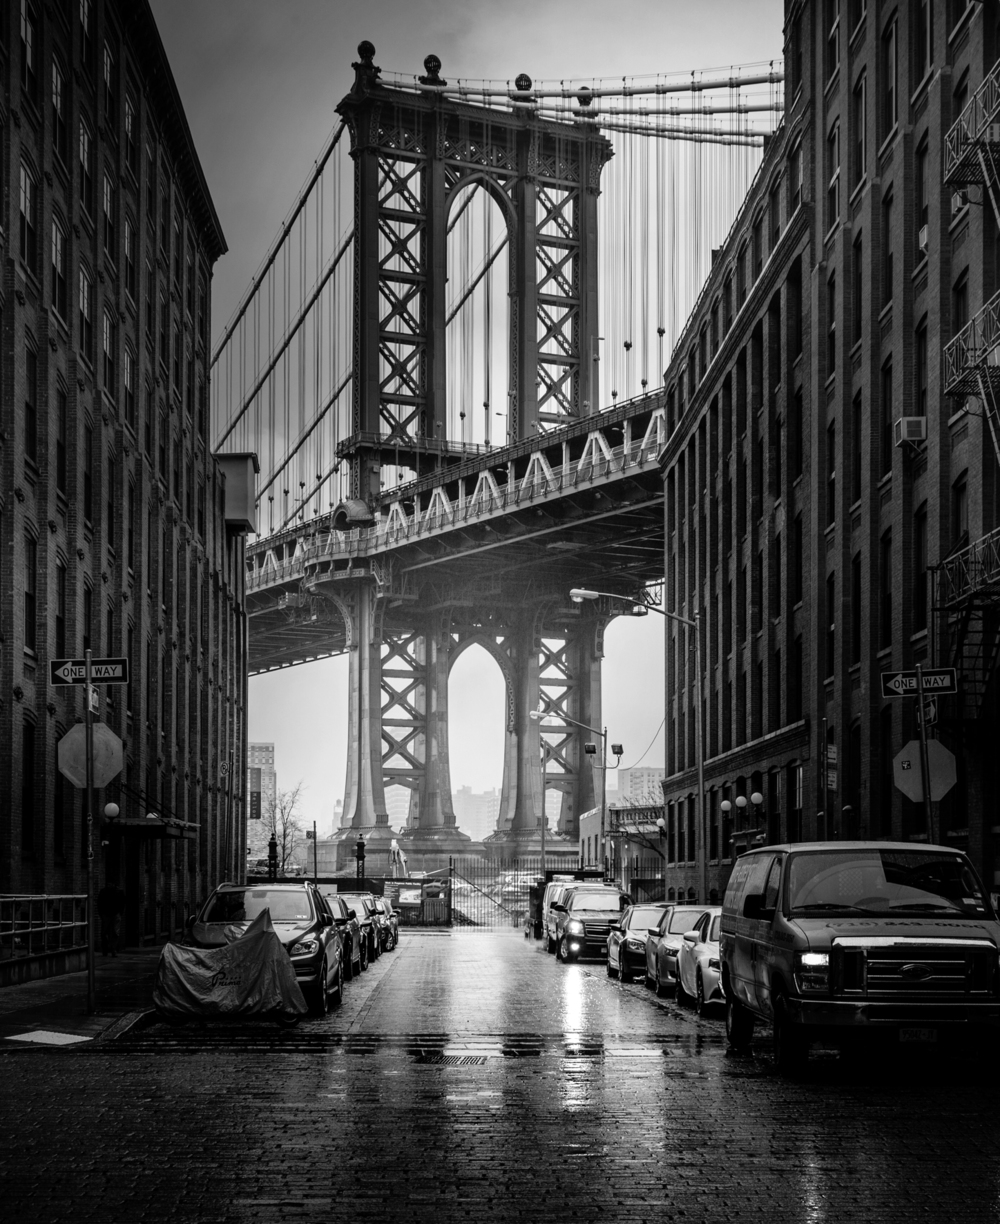 © New York by Serge Ramelli, published by teNeues, www.teneues.com. CLASSIC VIEW OF THE MANHATTAN BRIDGE IN BROOKLYN, Photo © 2015 Serge Ramelli and YellowKorner. All rights reserved.